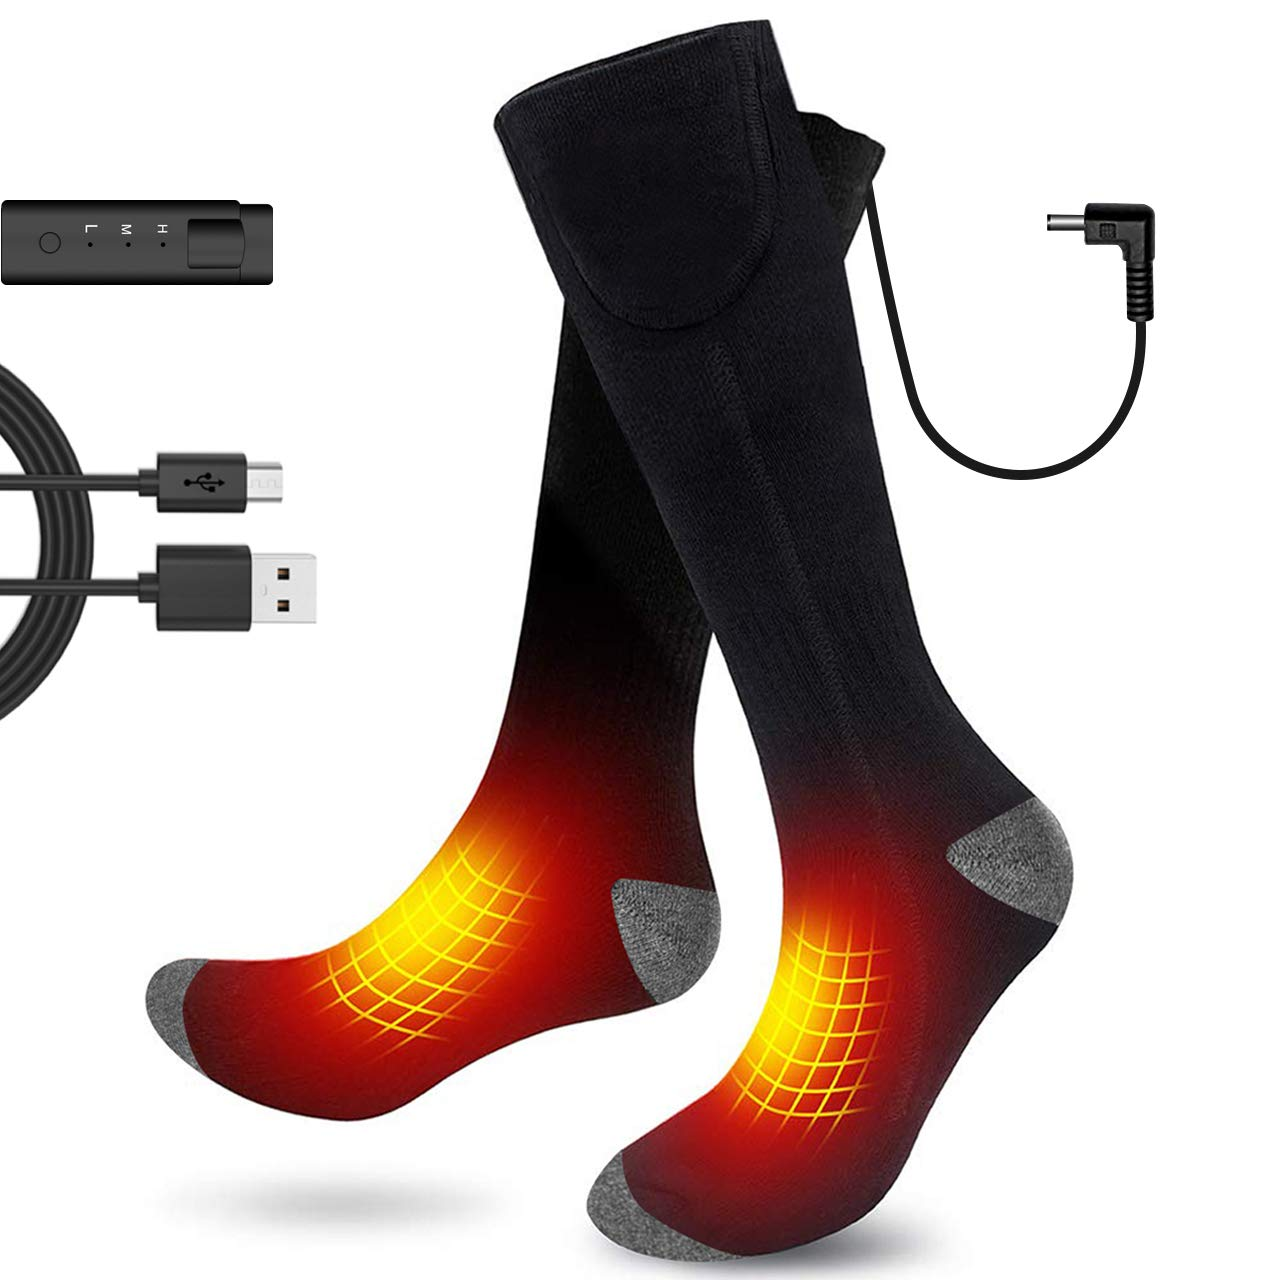 Aqziill Heated Socks -Electric Battery Cotton Socks Get Whole Toes Warm-Rechargeable Thermal Socks Breathable Foot Warmer for Skiing Hunting Camping Riding Motocycle by Aqziill